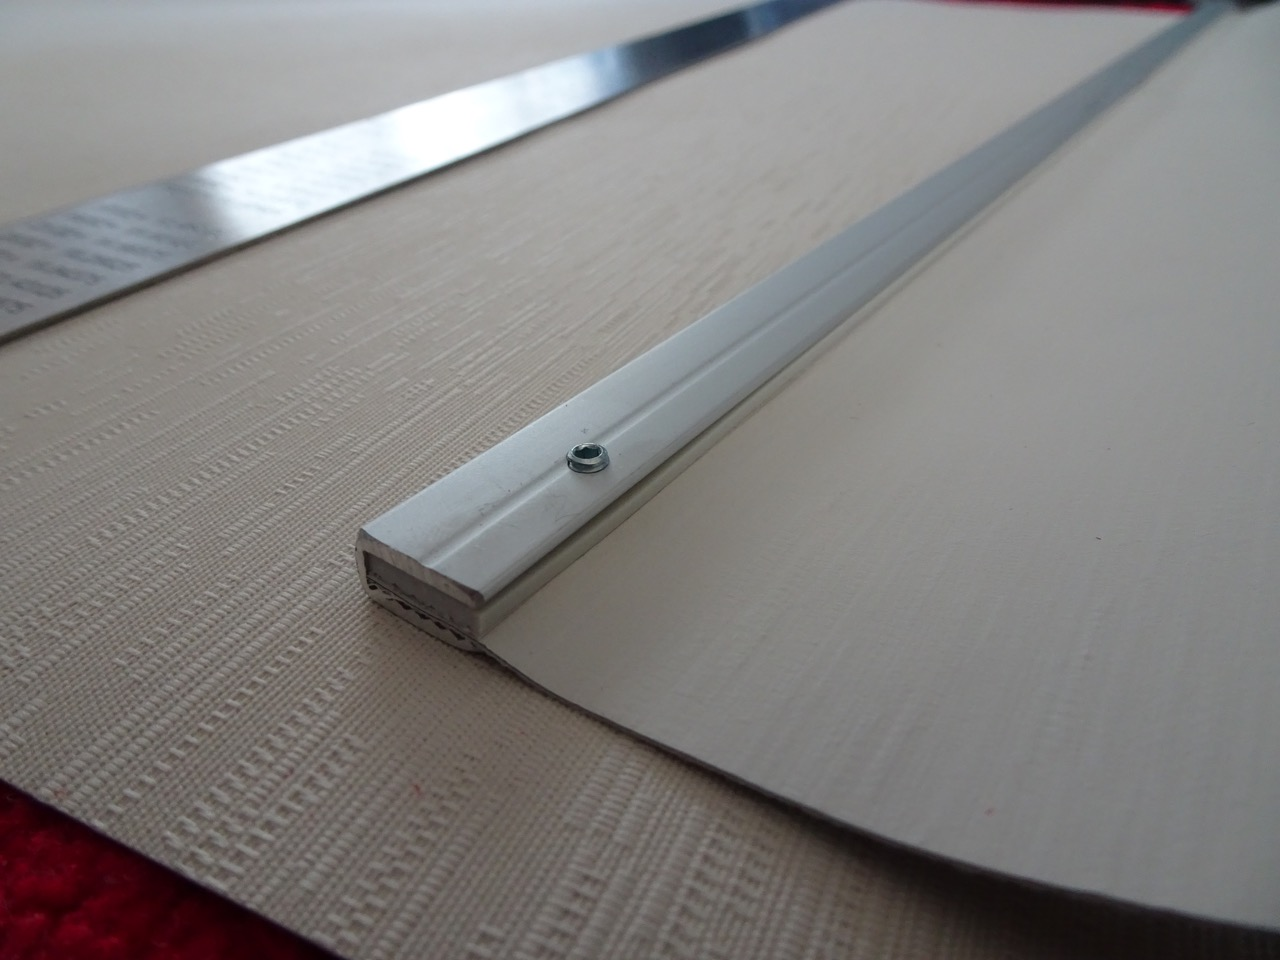 Diy Blinds Online How To Install Panel Glide Blinds From Blinds Online